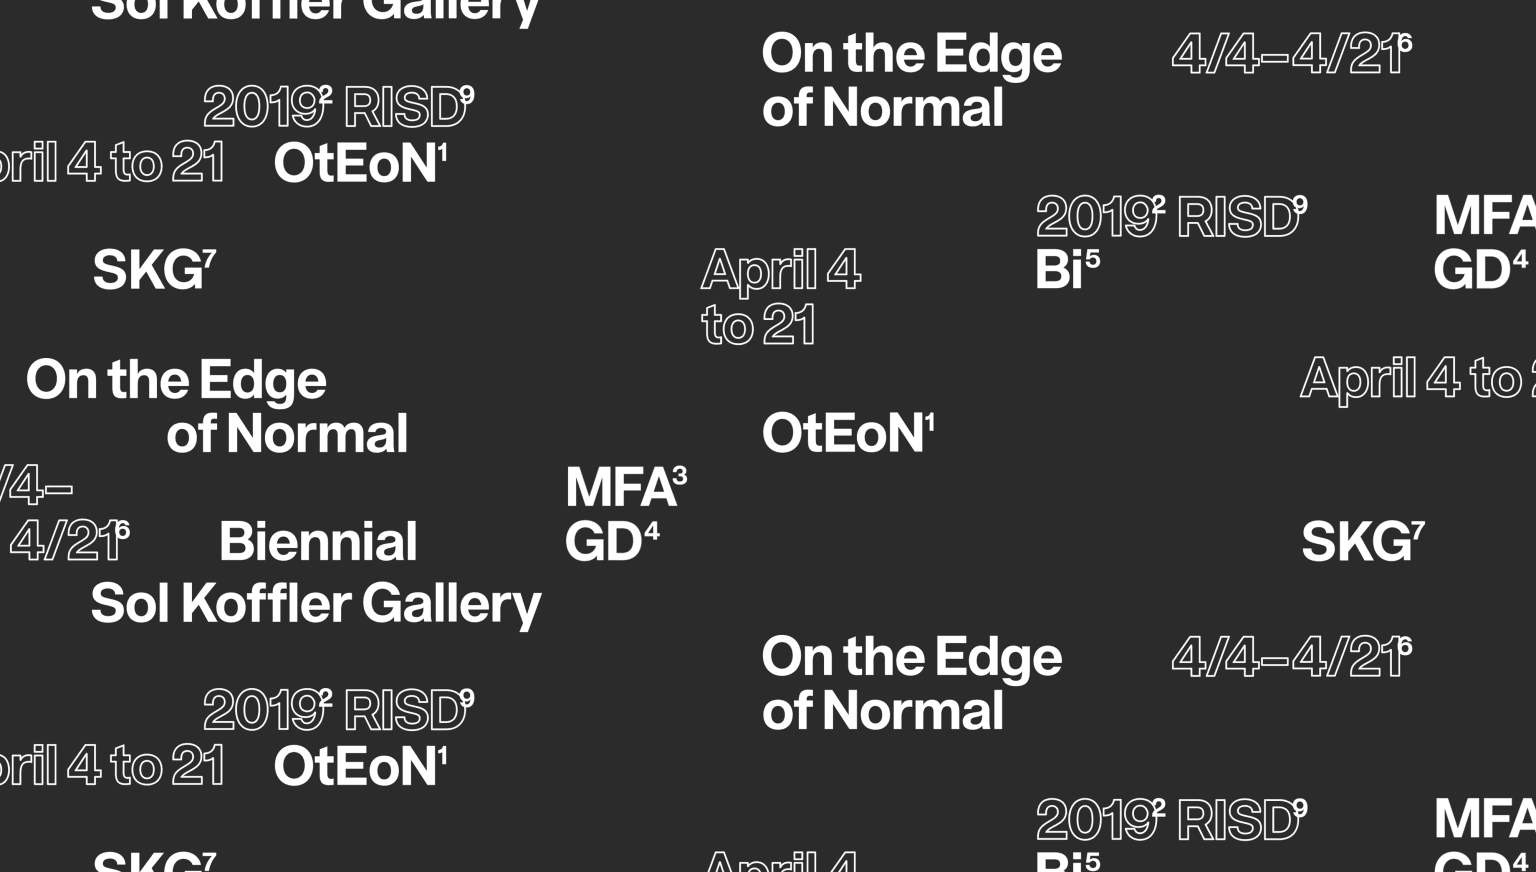 On the Edge of Normal: Visual identity and exhibition design